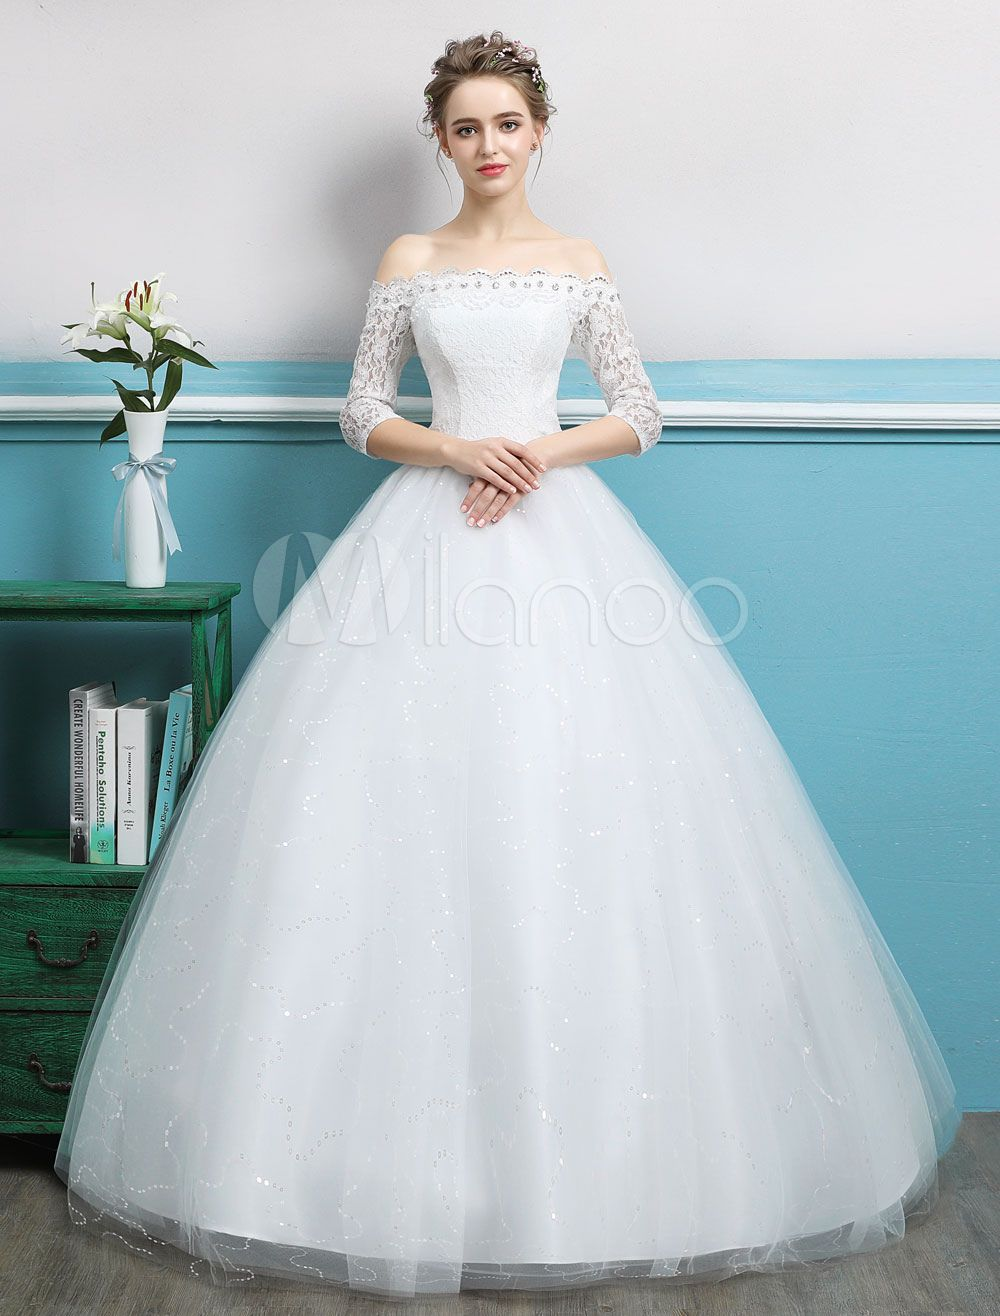 Wedding dresses with lots of rhinestones  Princess Ball Gown Wedding Dresses Off Shoulder Lace Rhinestones